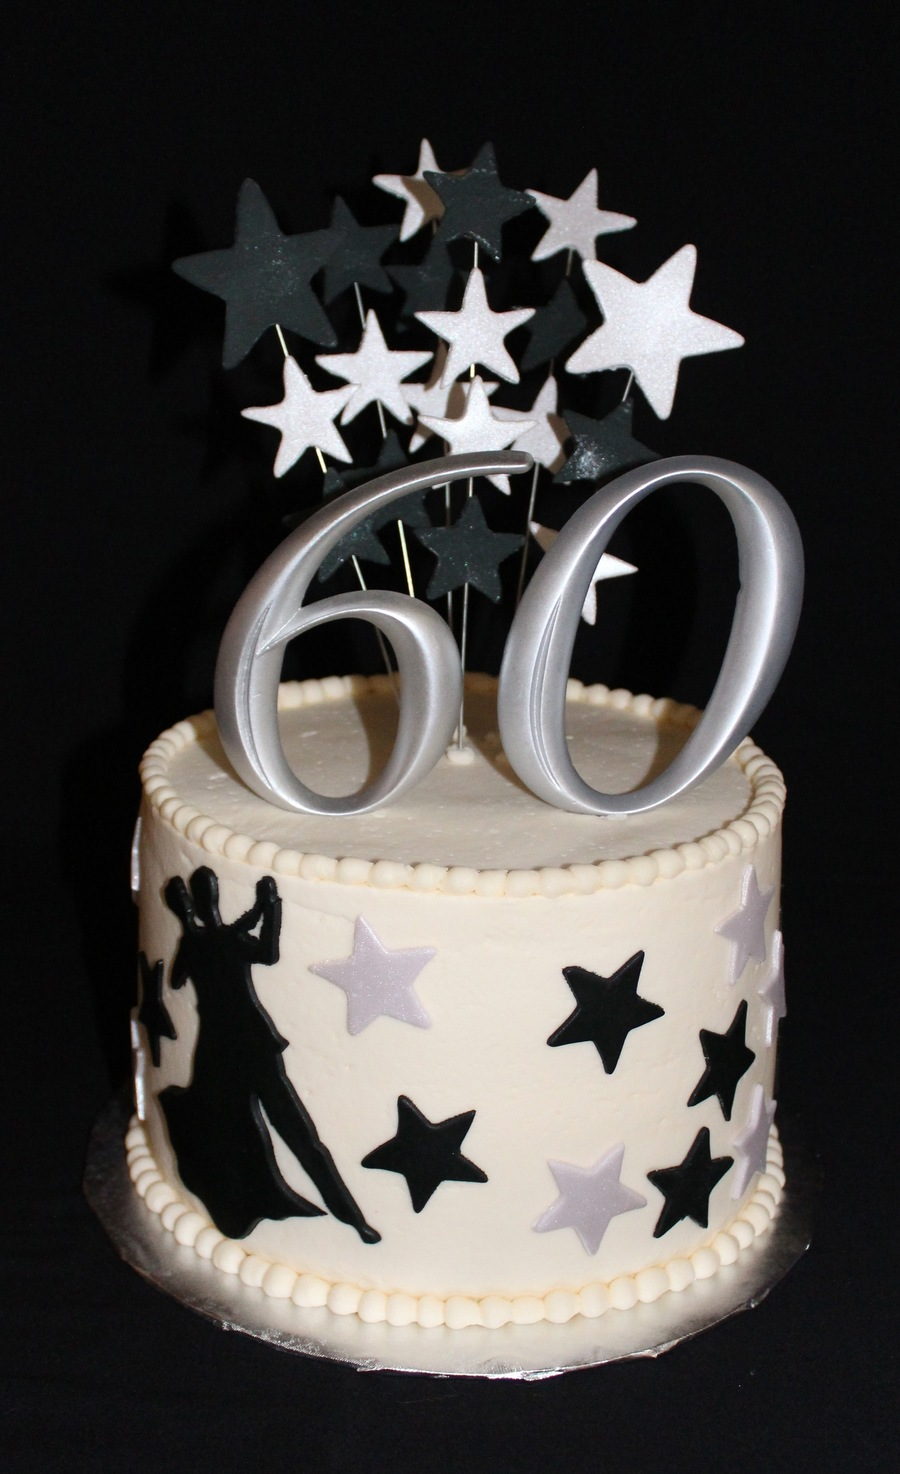 60th Birthday Cake Lemon Cake With Lemon Curd Filling And